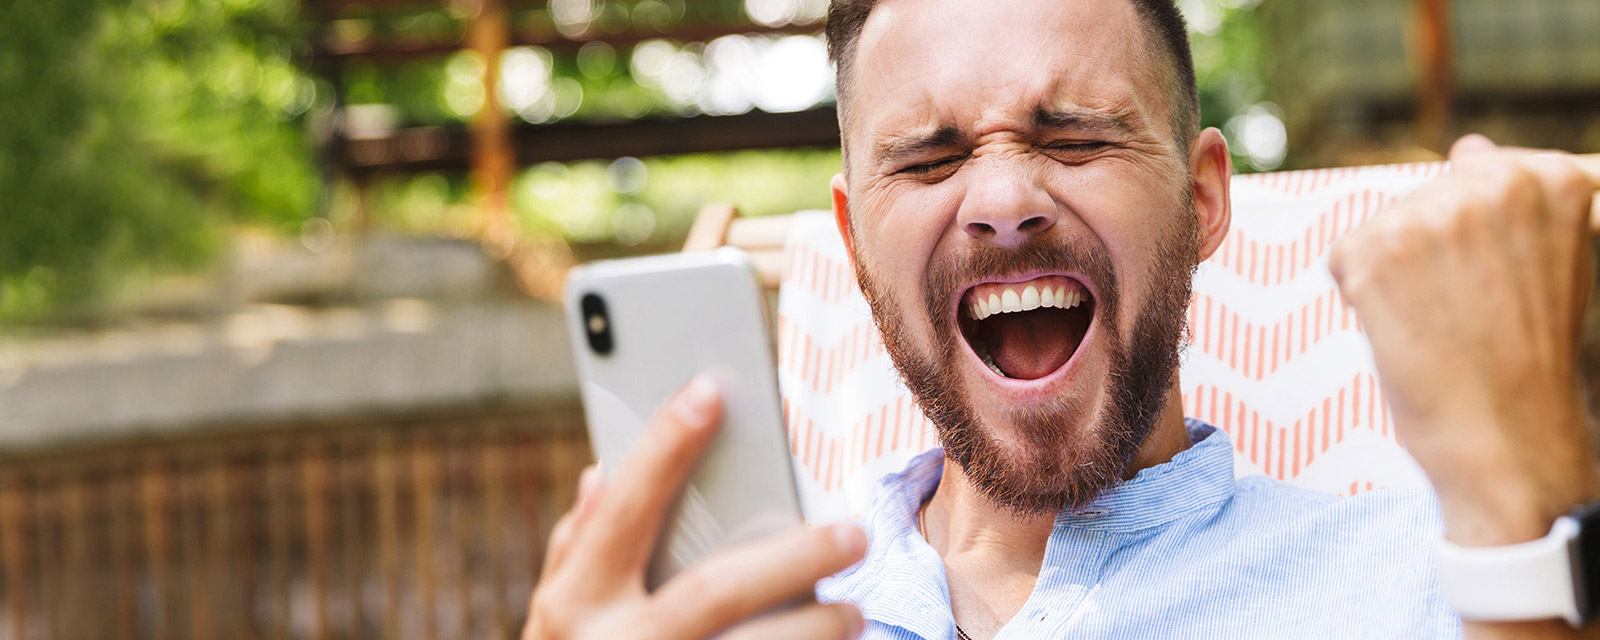 A man with a happy expression holding a phone.